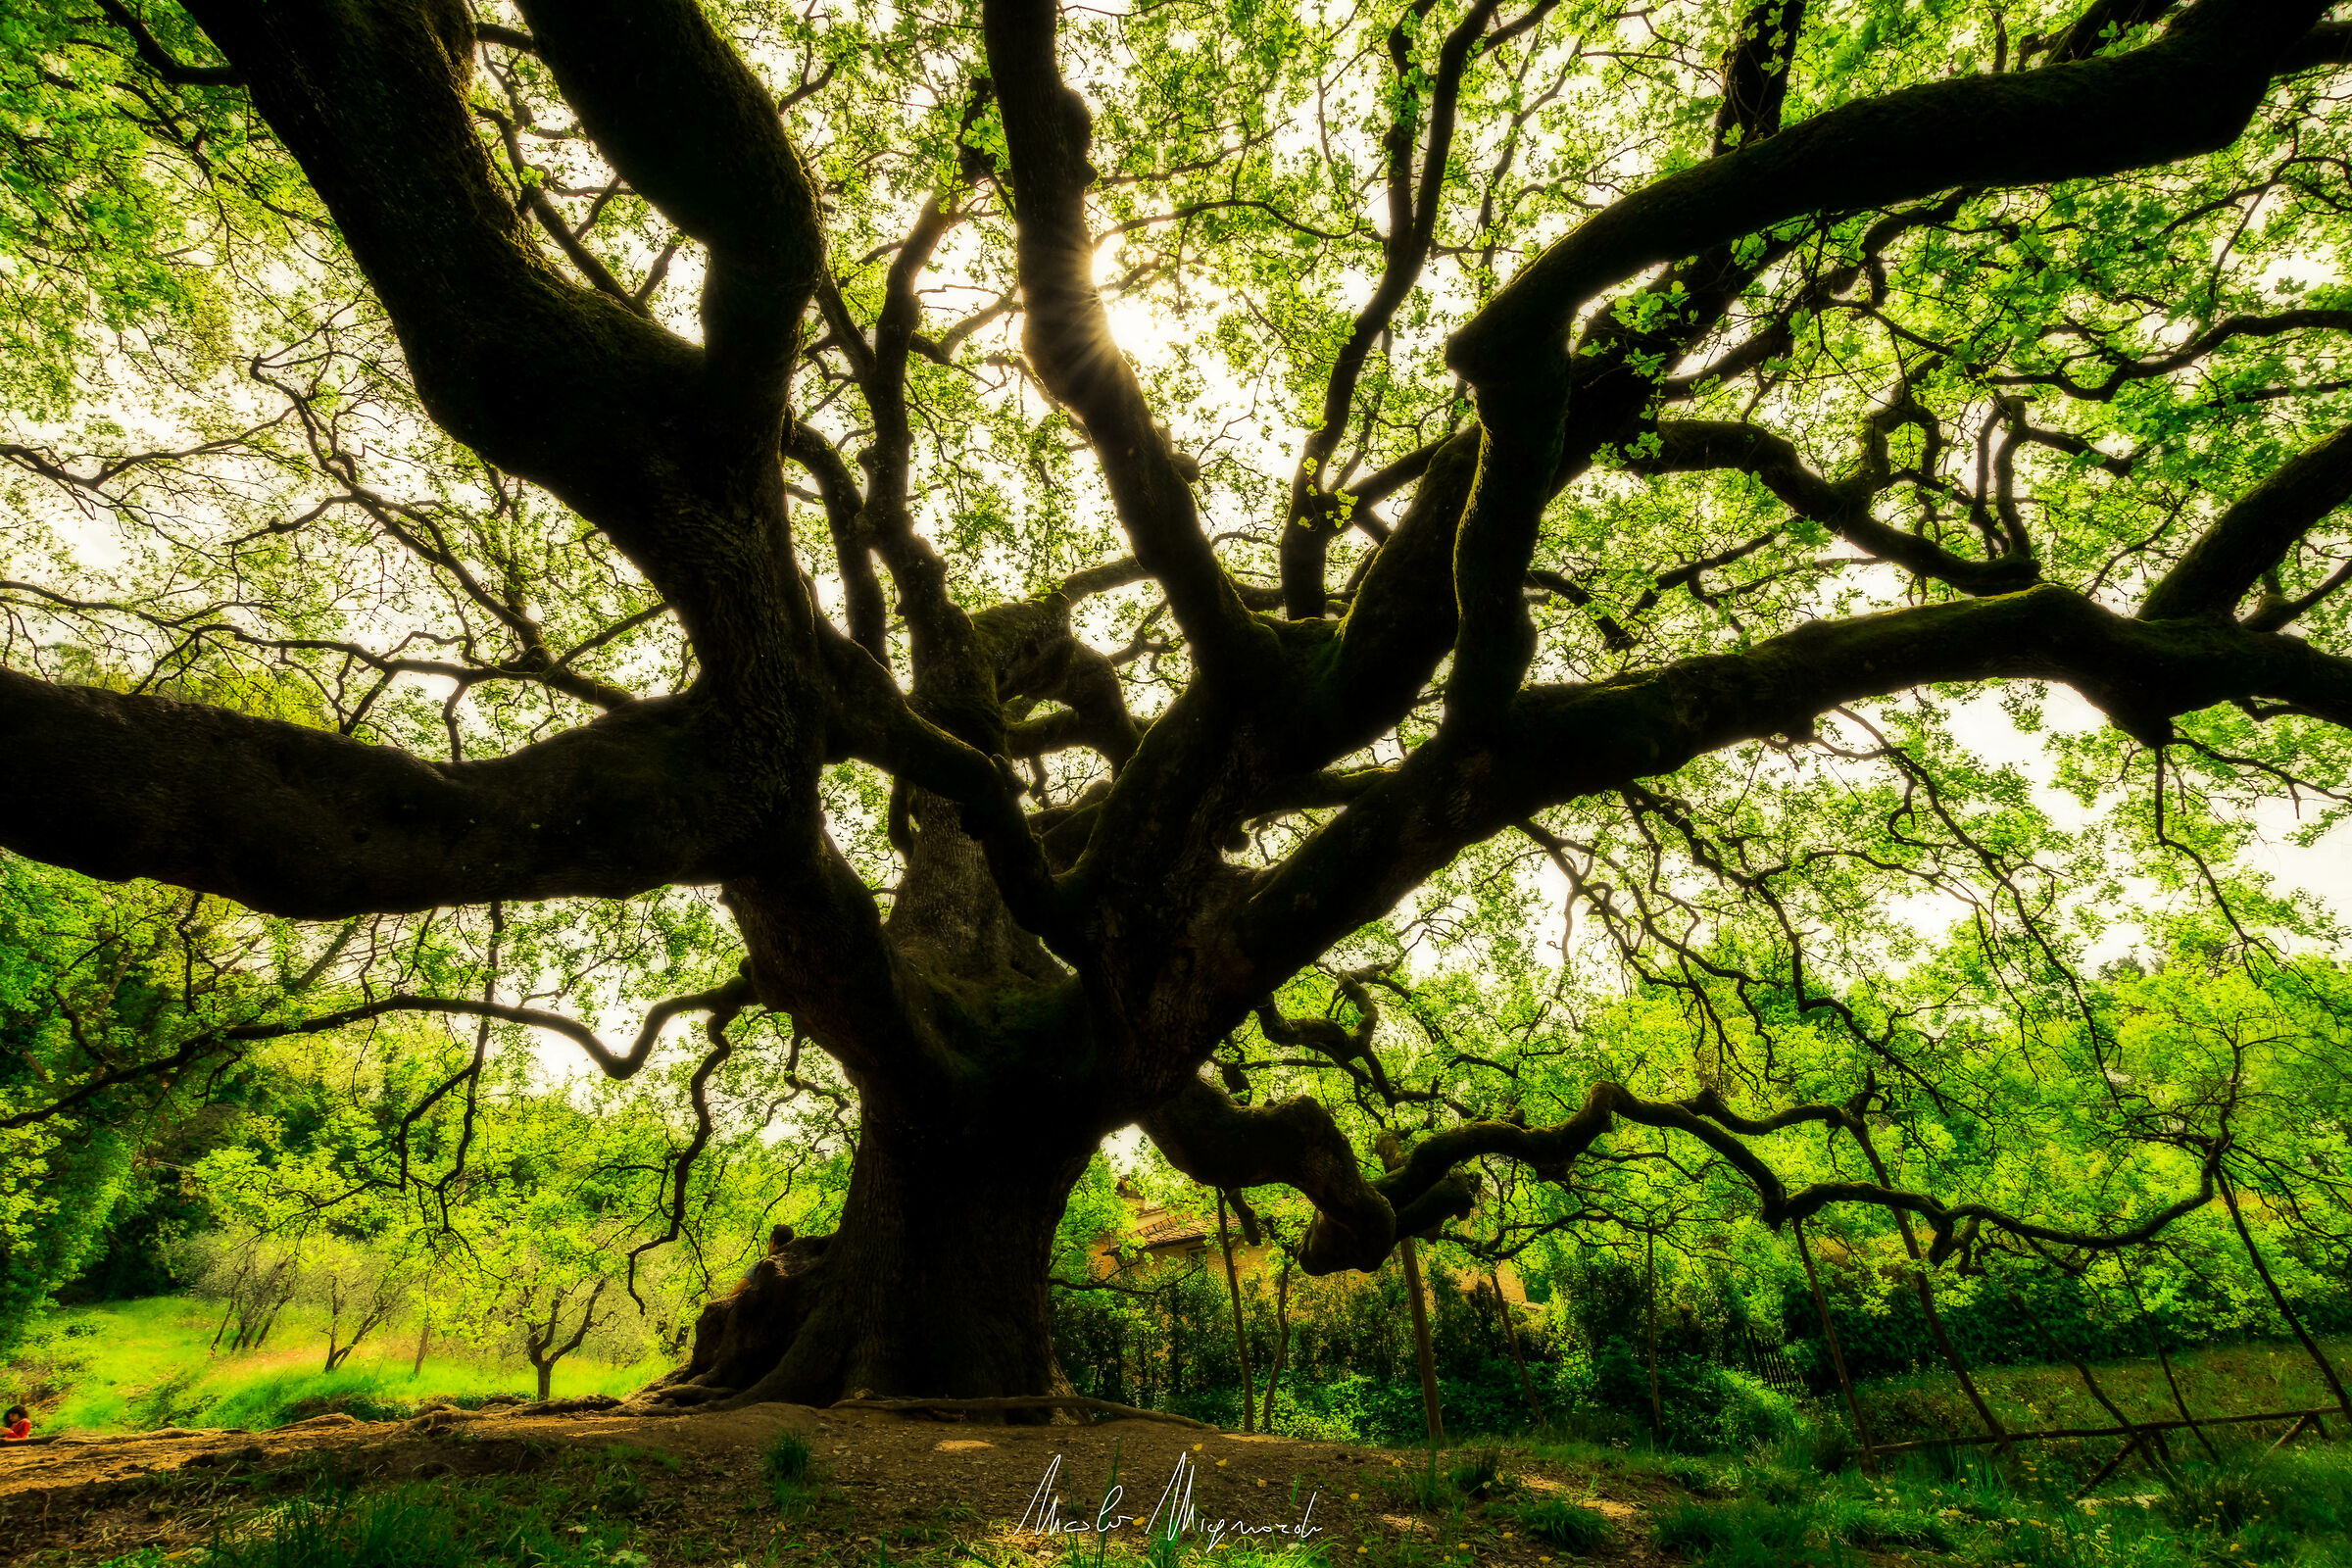 The Great Witches Oak...